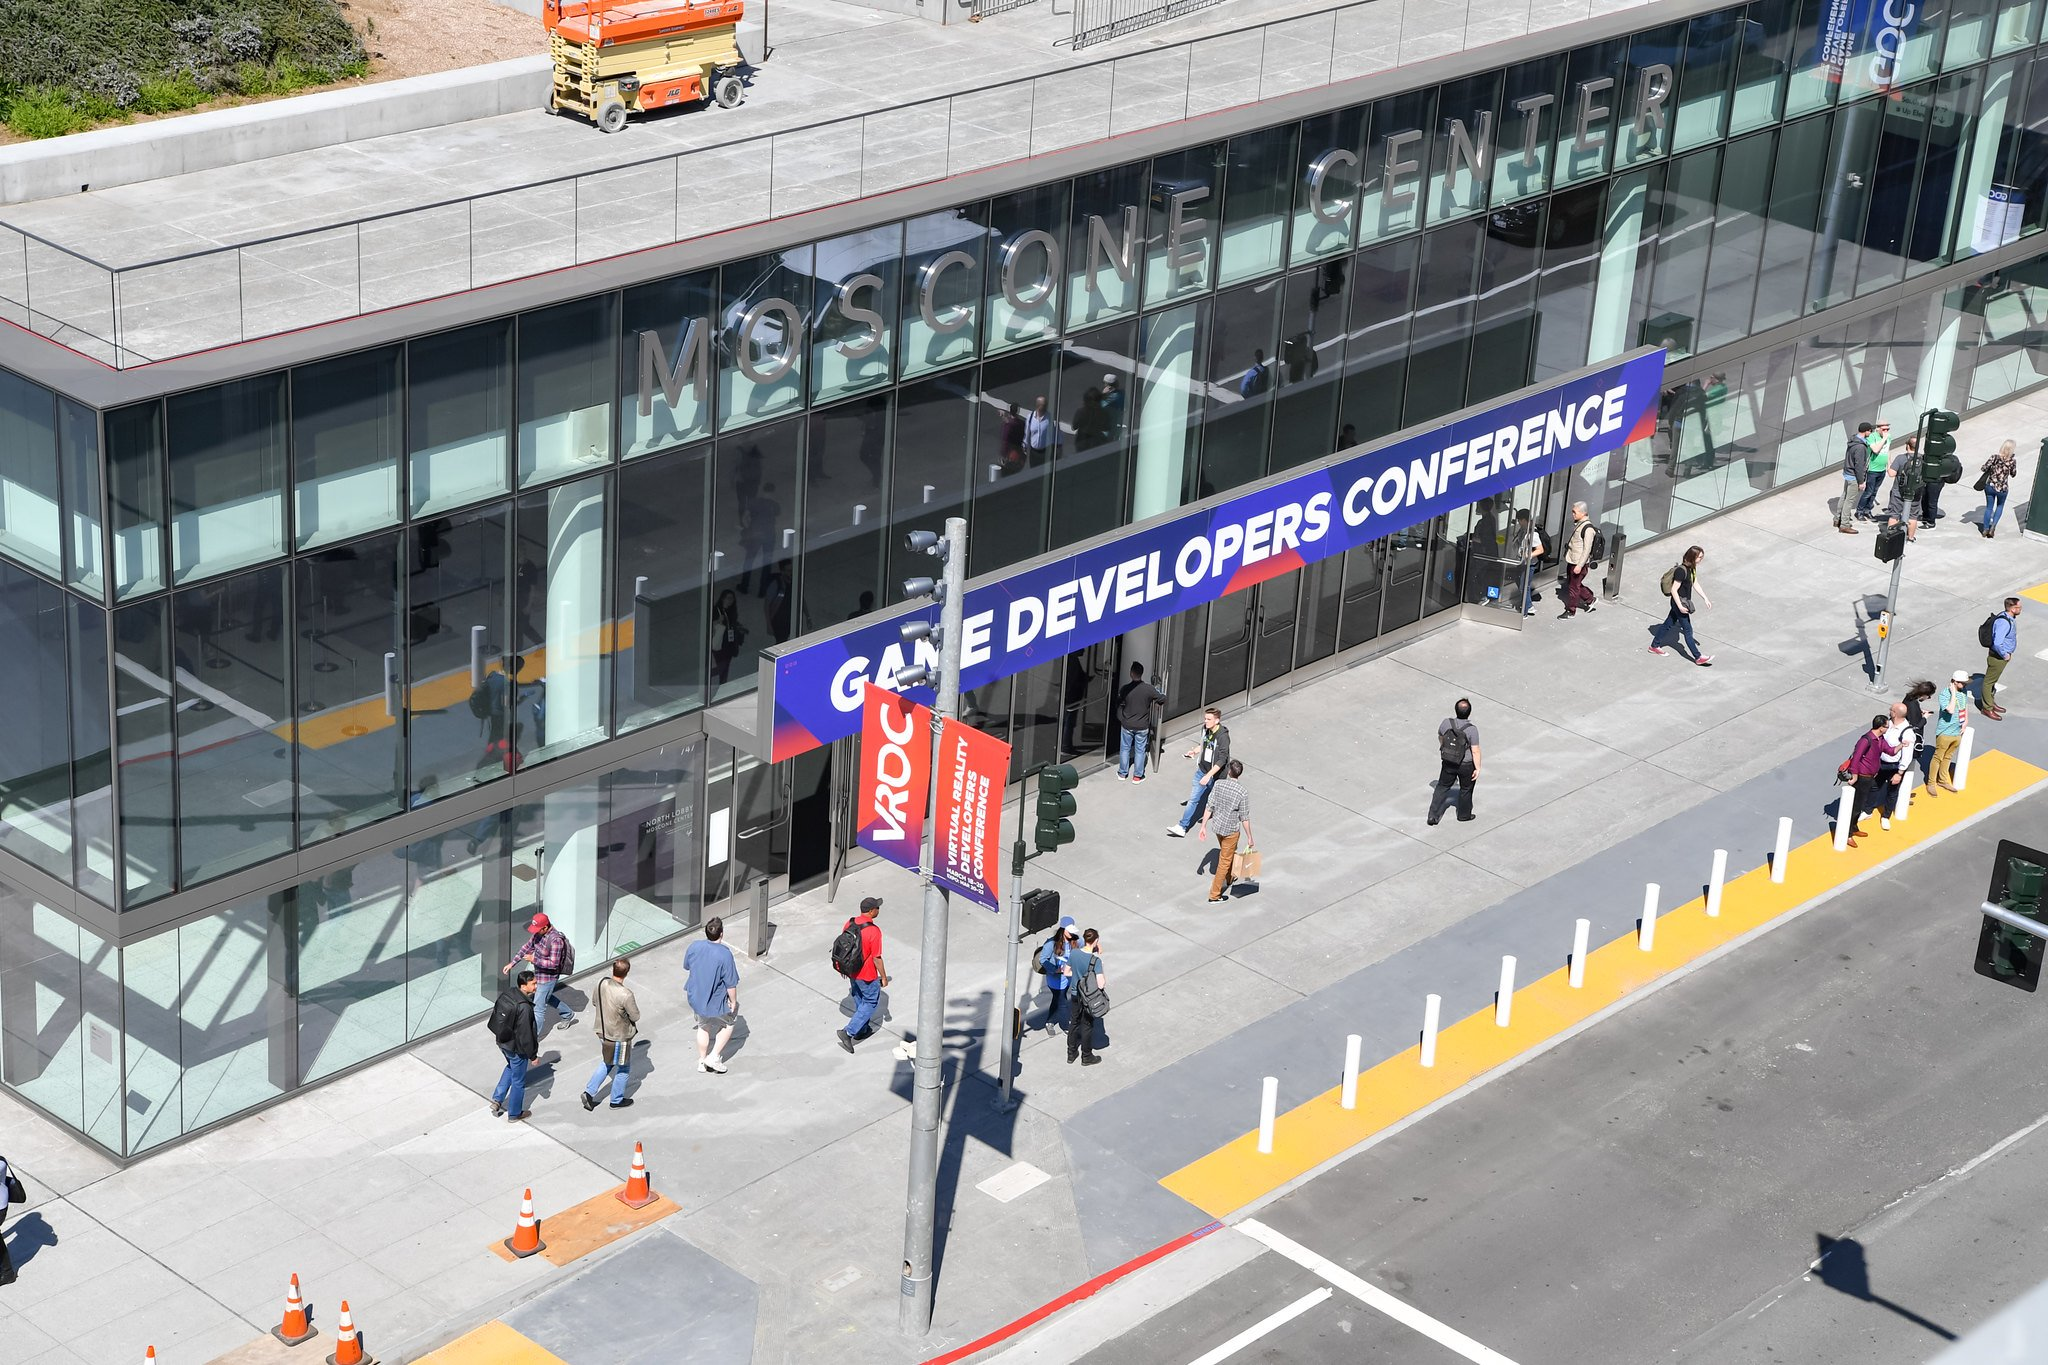 GDC 2020 issued a statement to assuage fears surrounding the coronavirus.